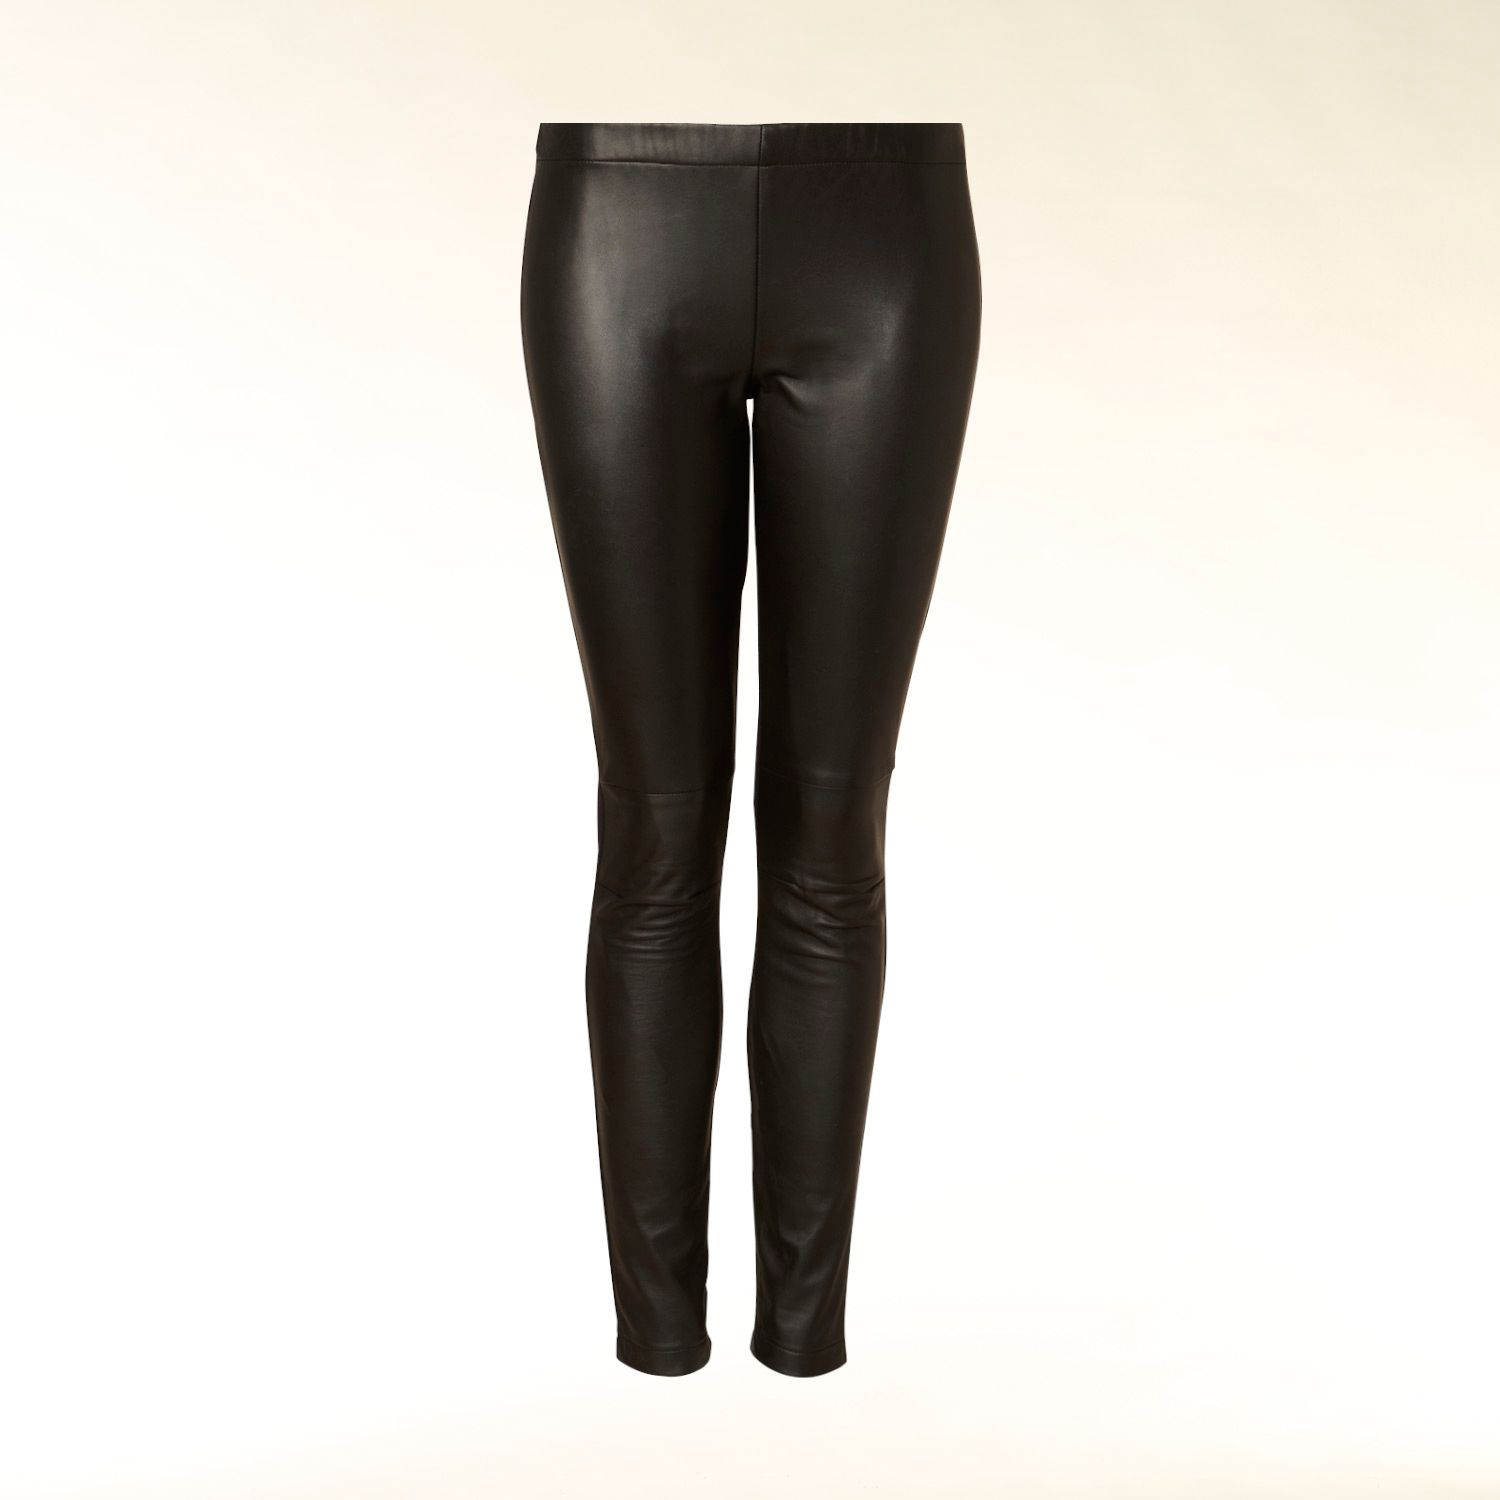 Hallhuber Leather front leggings Black - House of Fraser